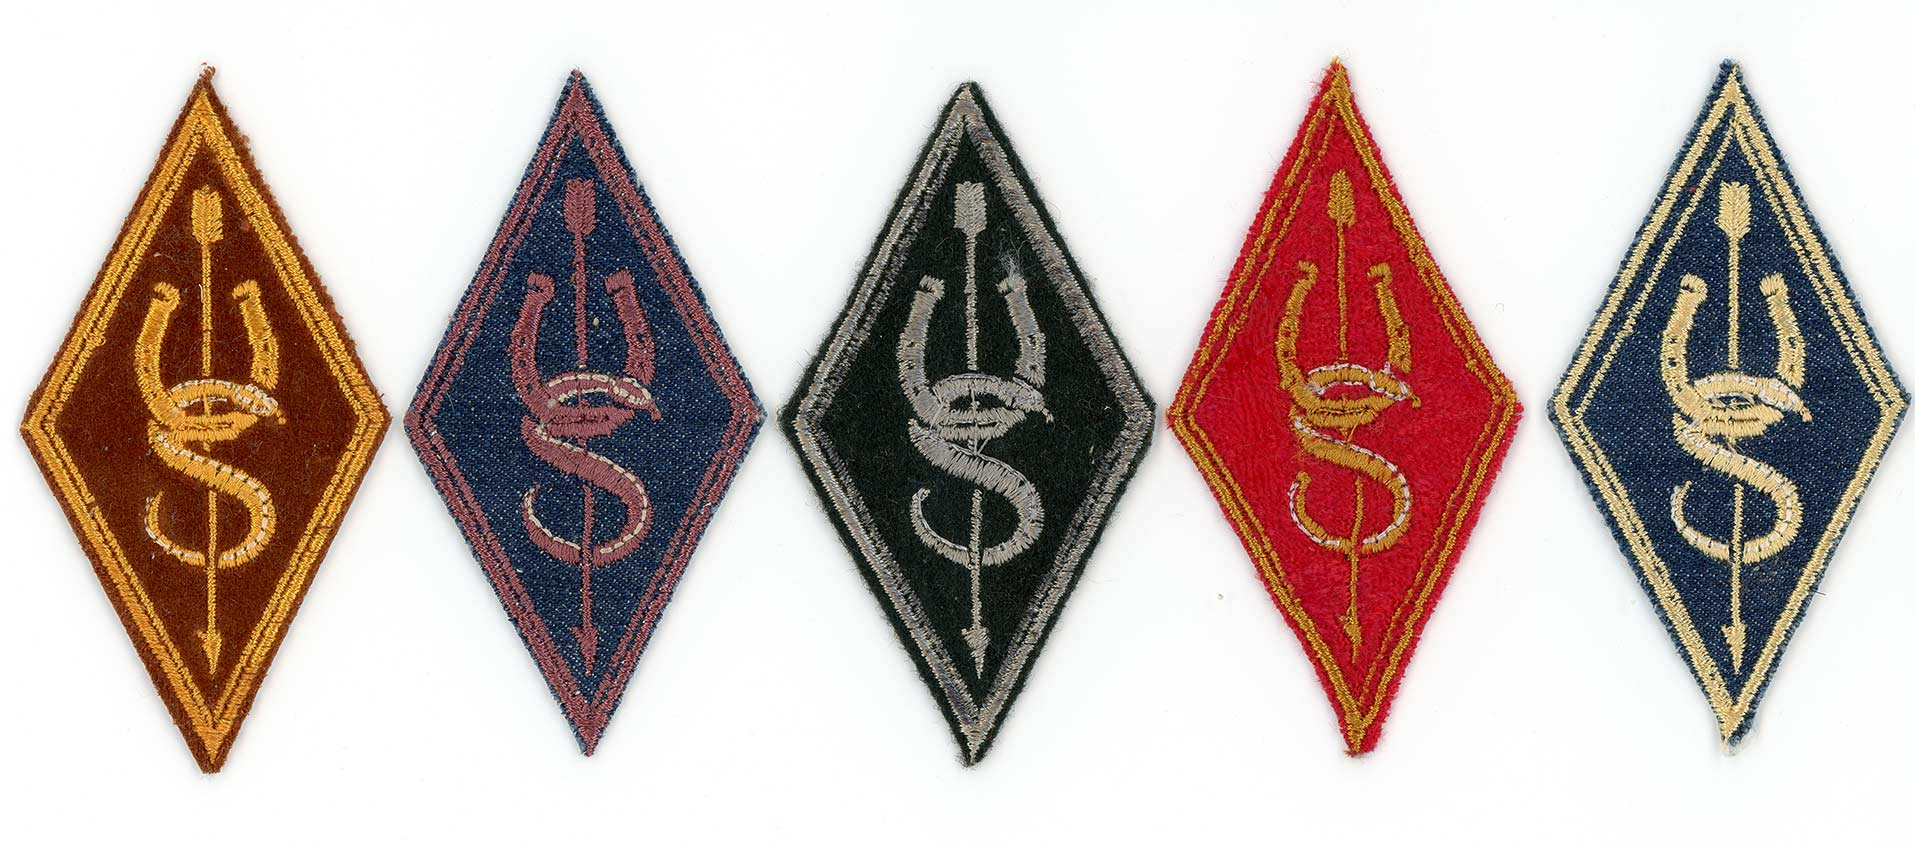 A series of patches for Underwood Stables members